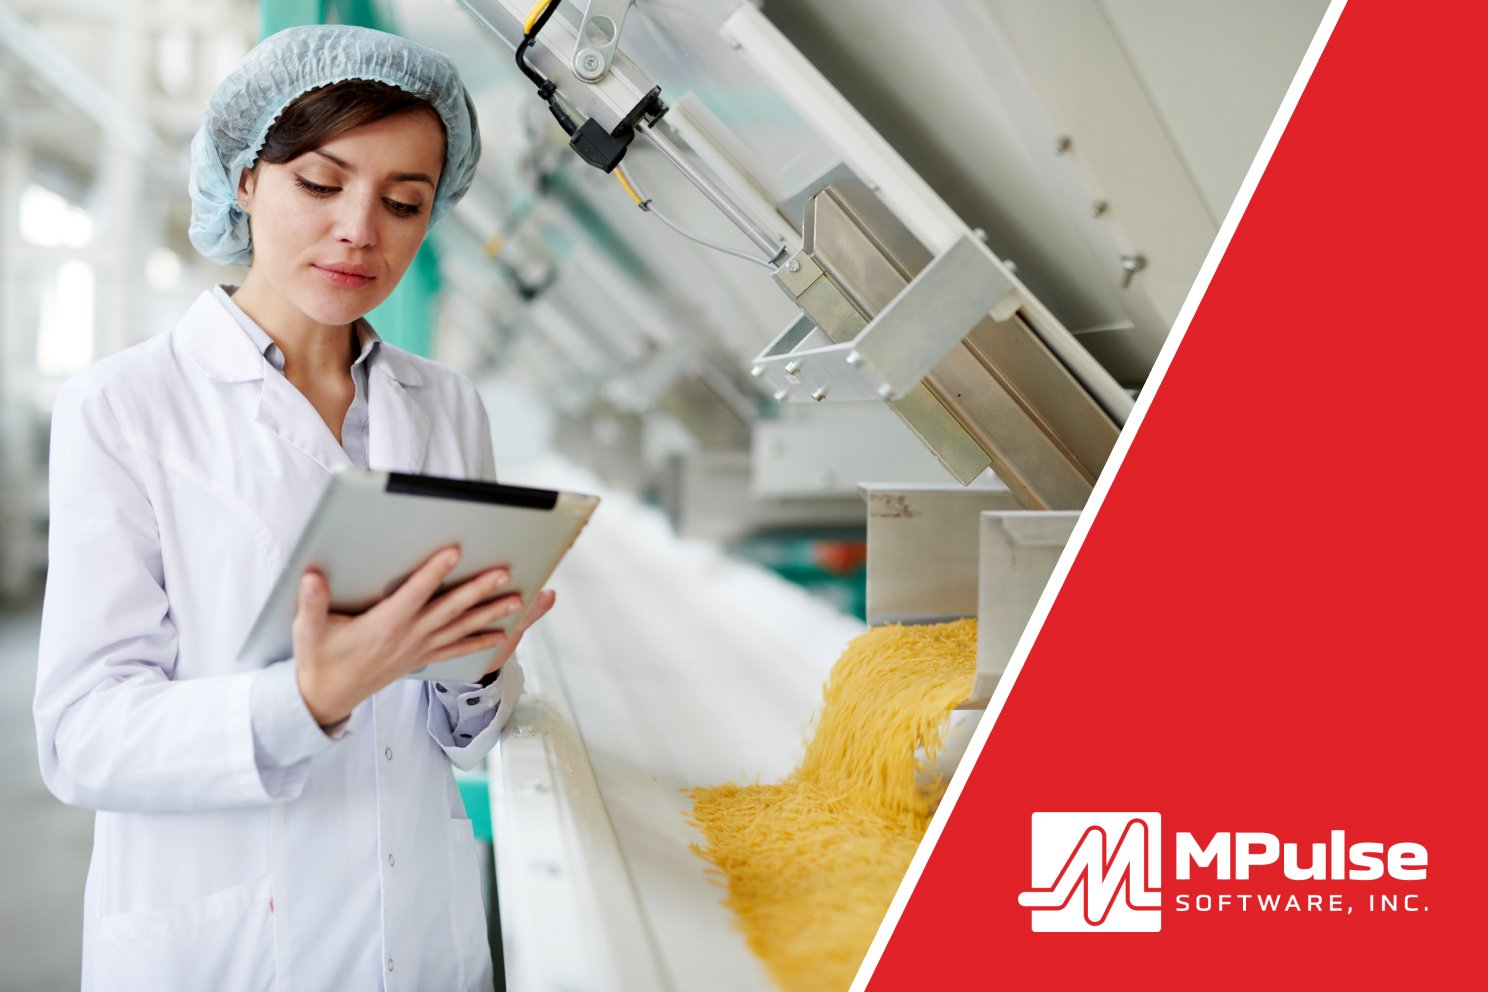 OSHA Standards for Food Products